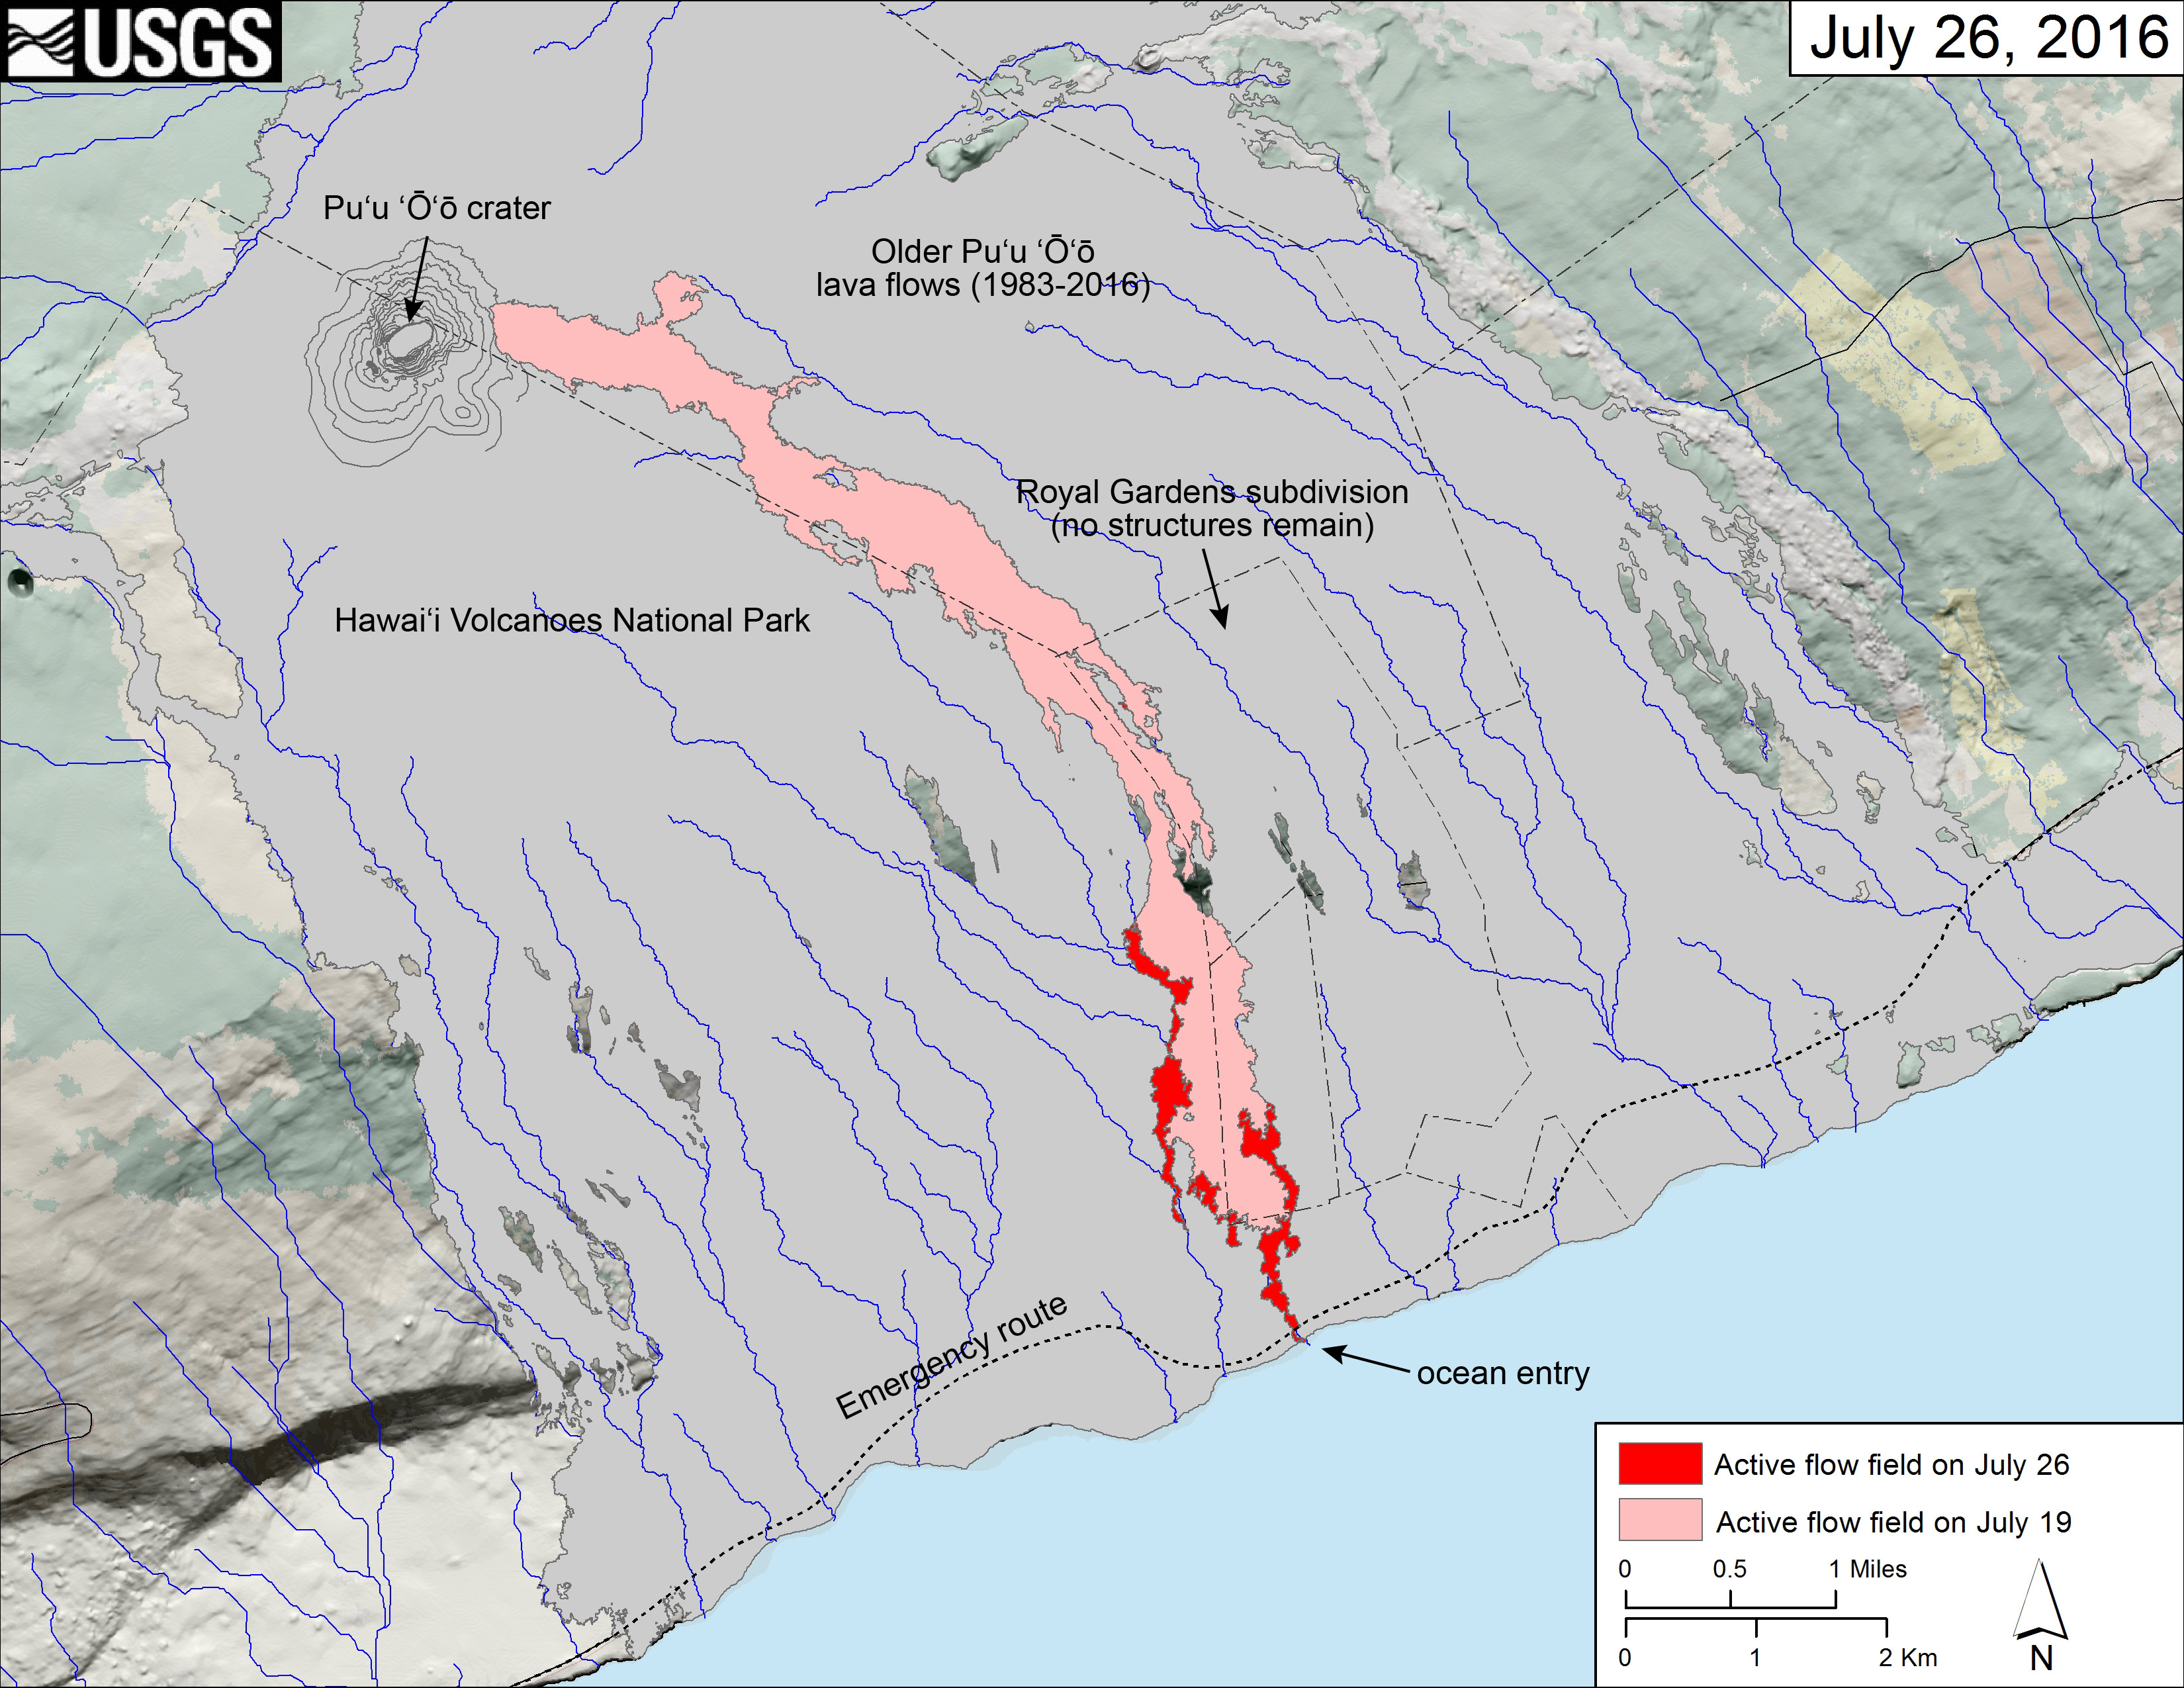 (USGS map) The area of the active flow field as of July 19 is shown in pink, while widening and advancement of the active flow as mapped on July 26 is shown in red. Lava reached the ocean on the morning of July 26. Older Puʻu ʻŌʻō lava flows (1983–2016) are shown in gray.